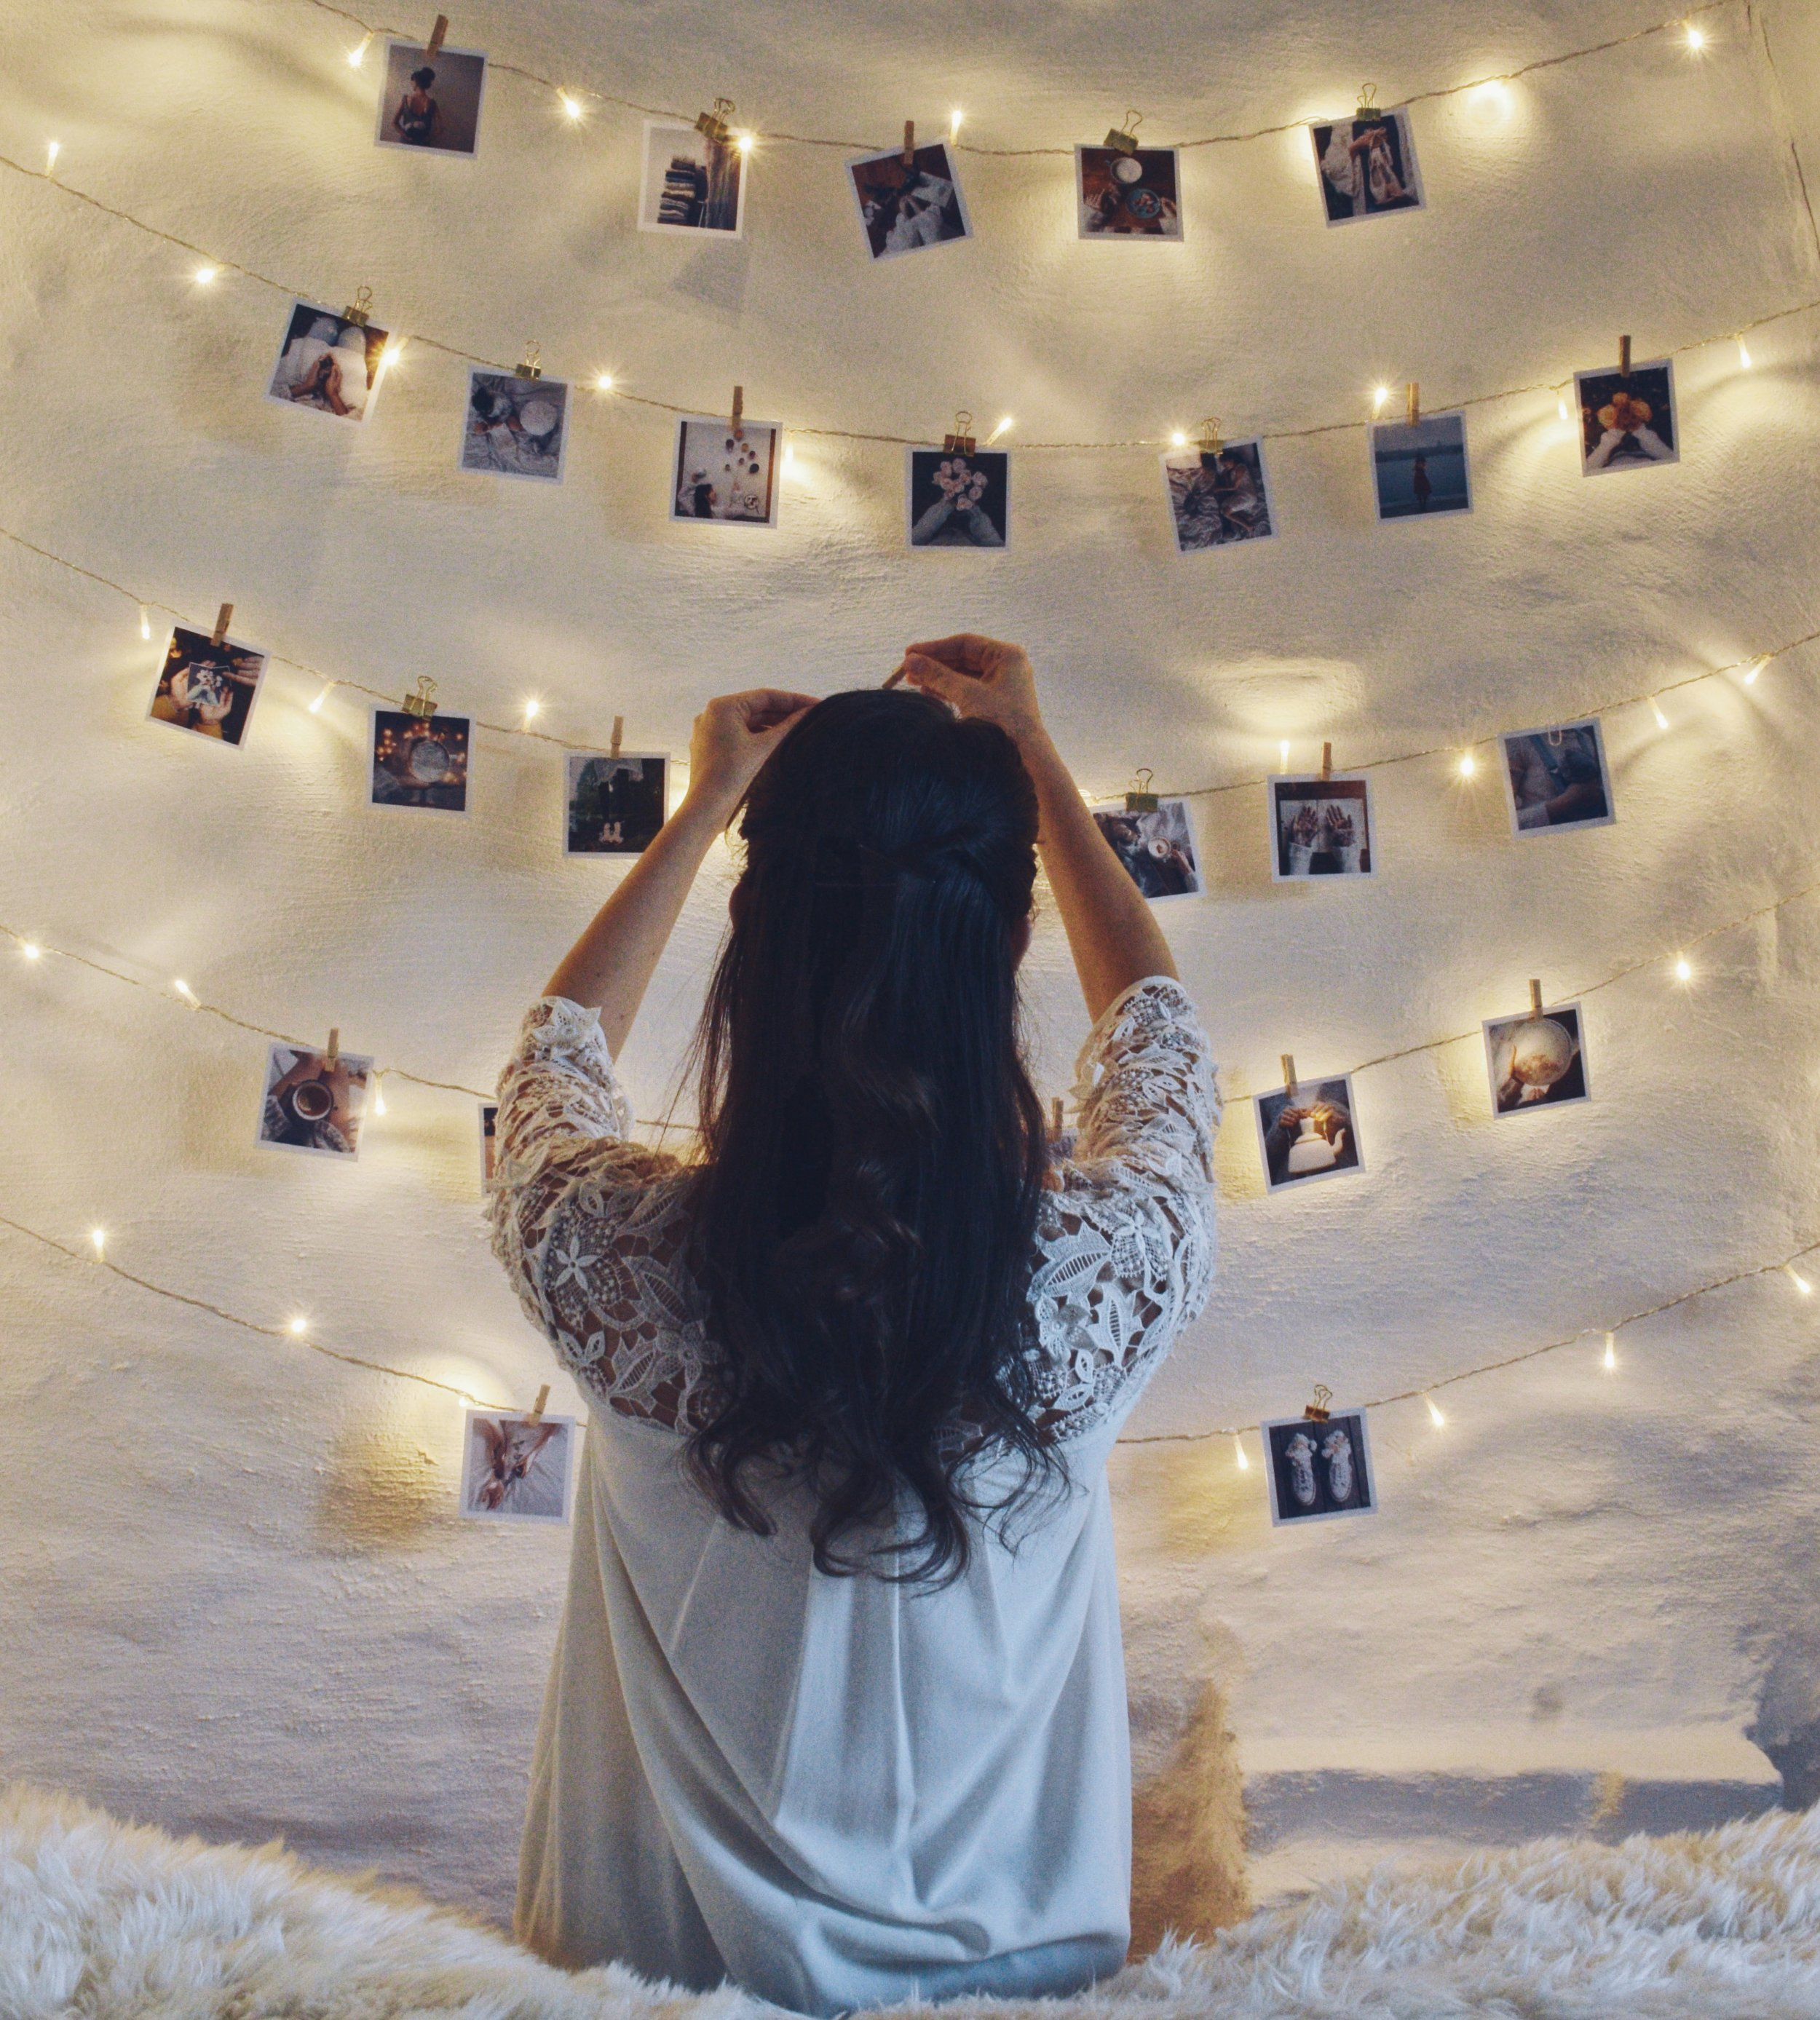 Fairylights and polaroids on a white wall